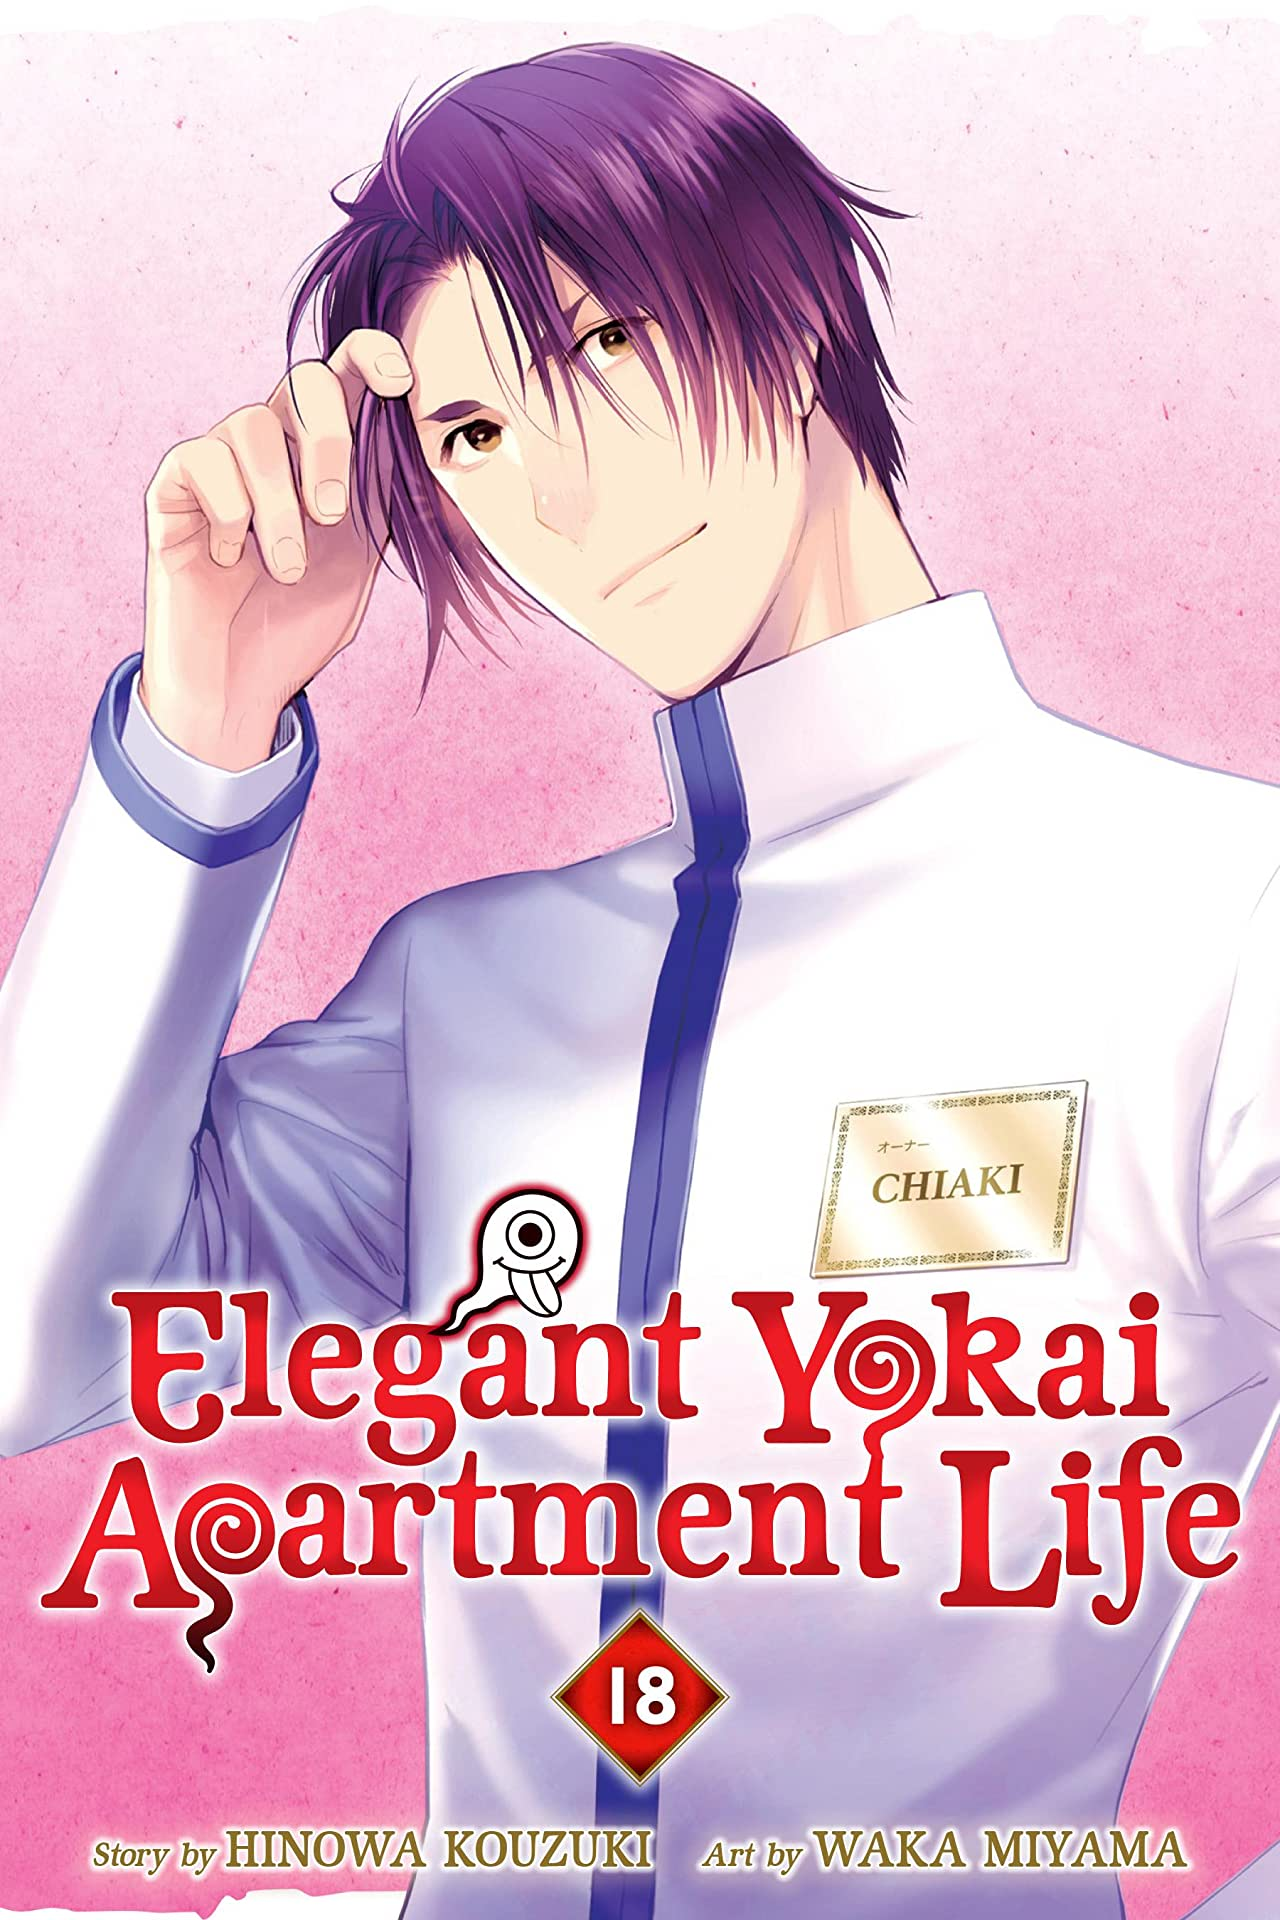 Elegant Yokai Apartment Life Vol. 18